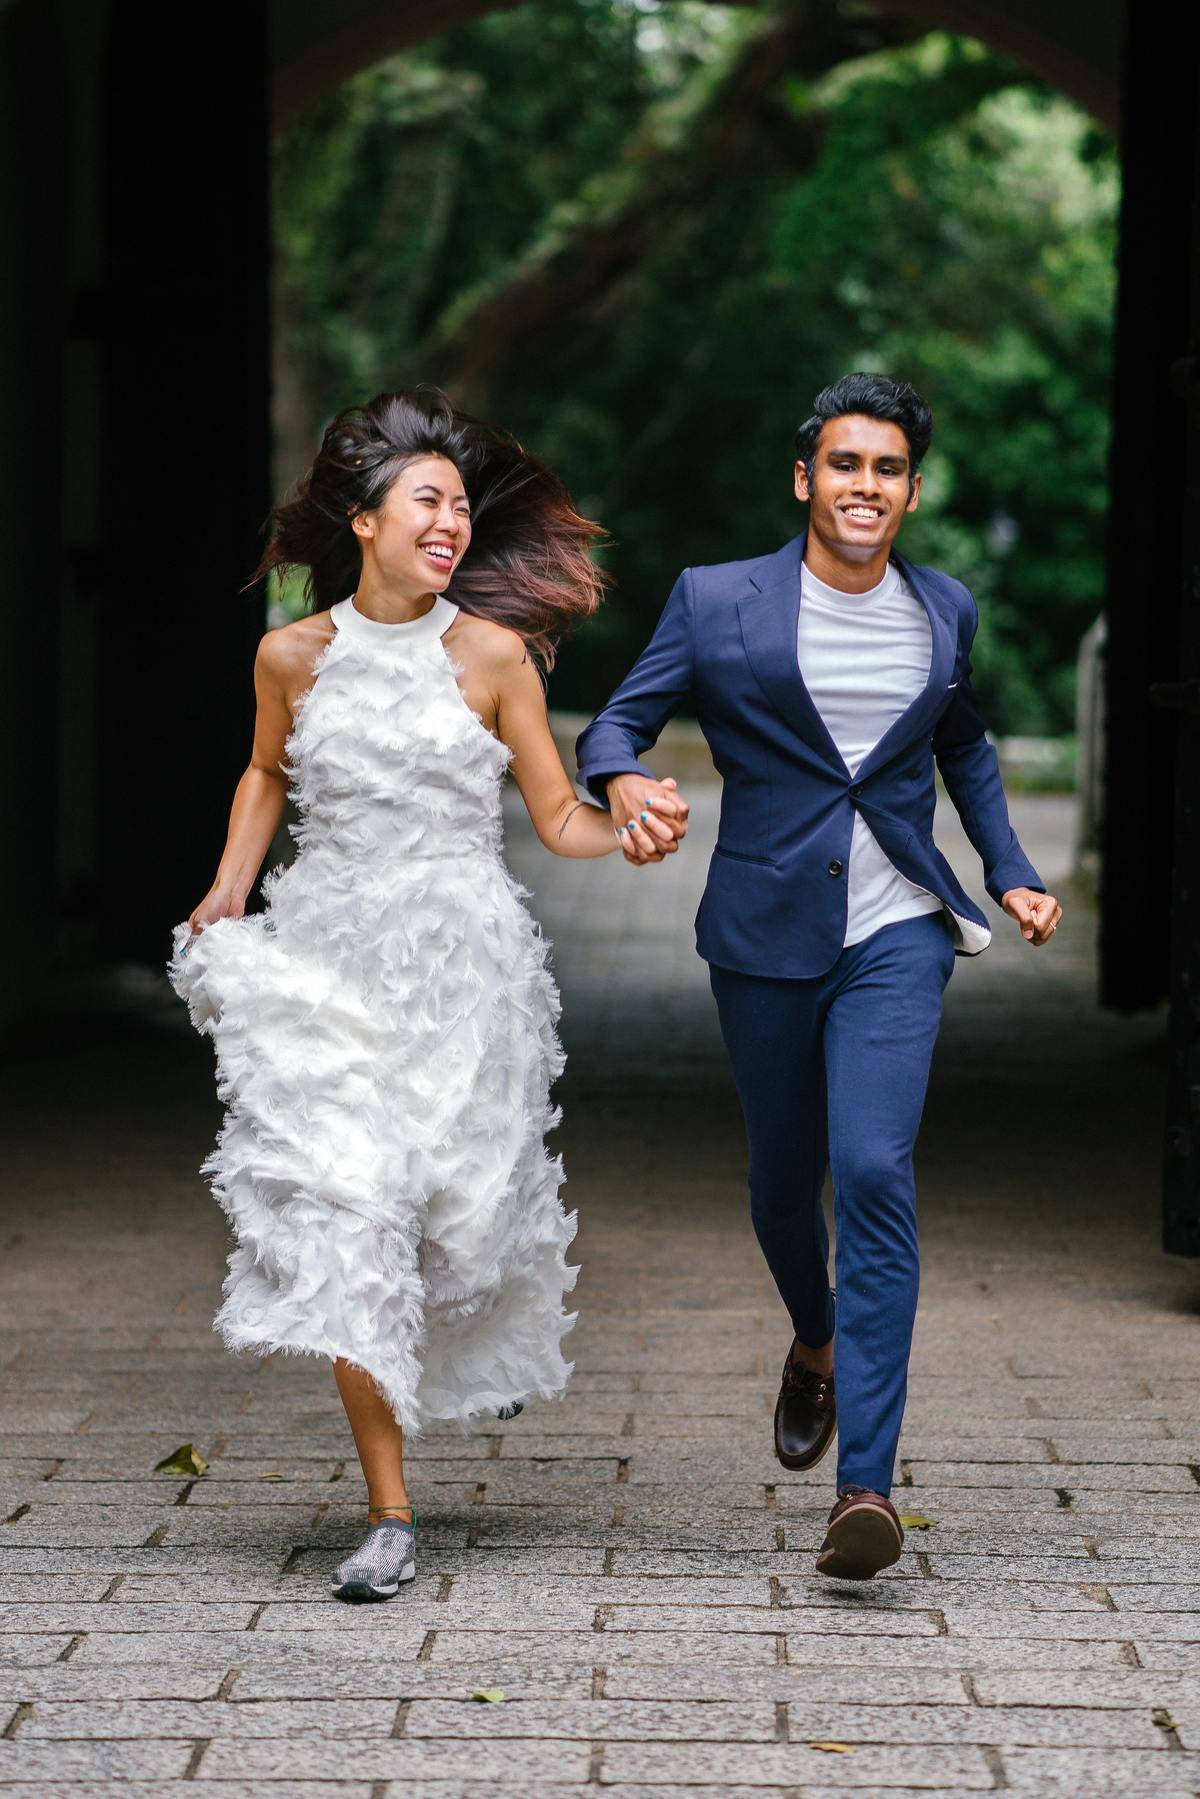 Bride and groom running and laughing together